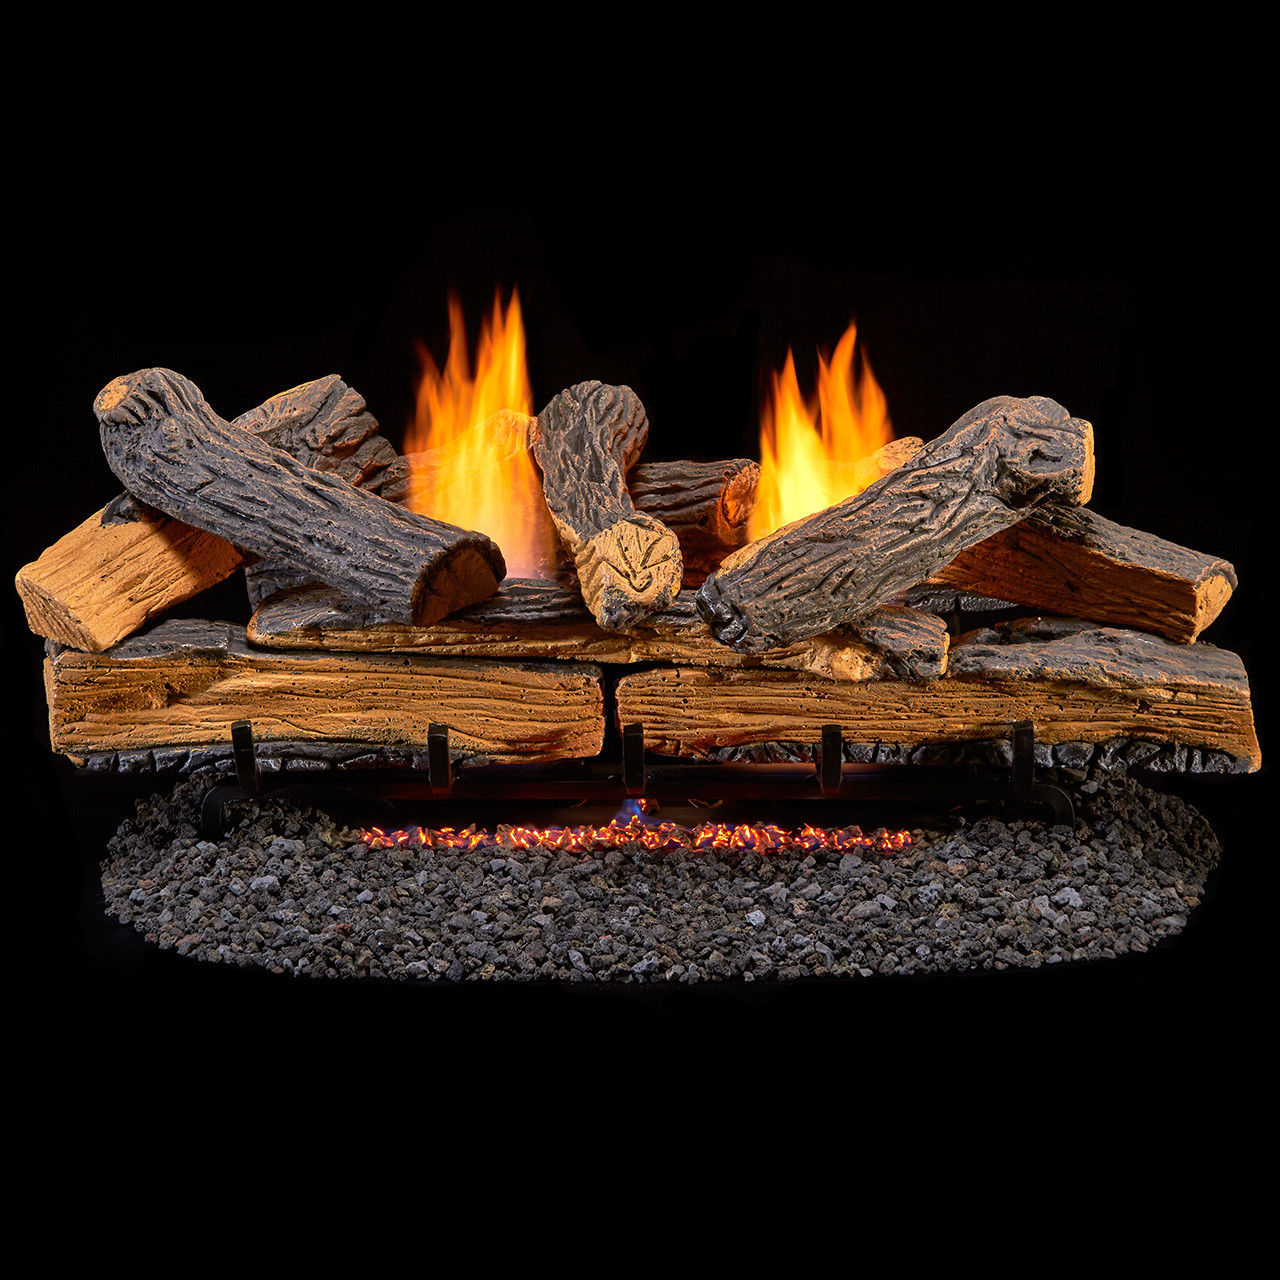 Duluth Forge Ventless Propane Gas Log Set 30 In Split Red Oak Manual Control Factory Buys Direct